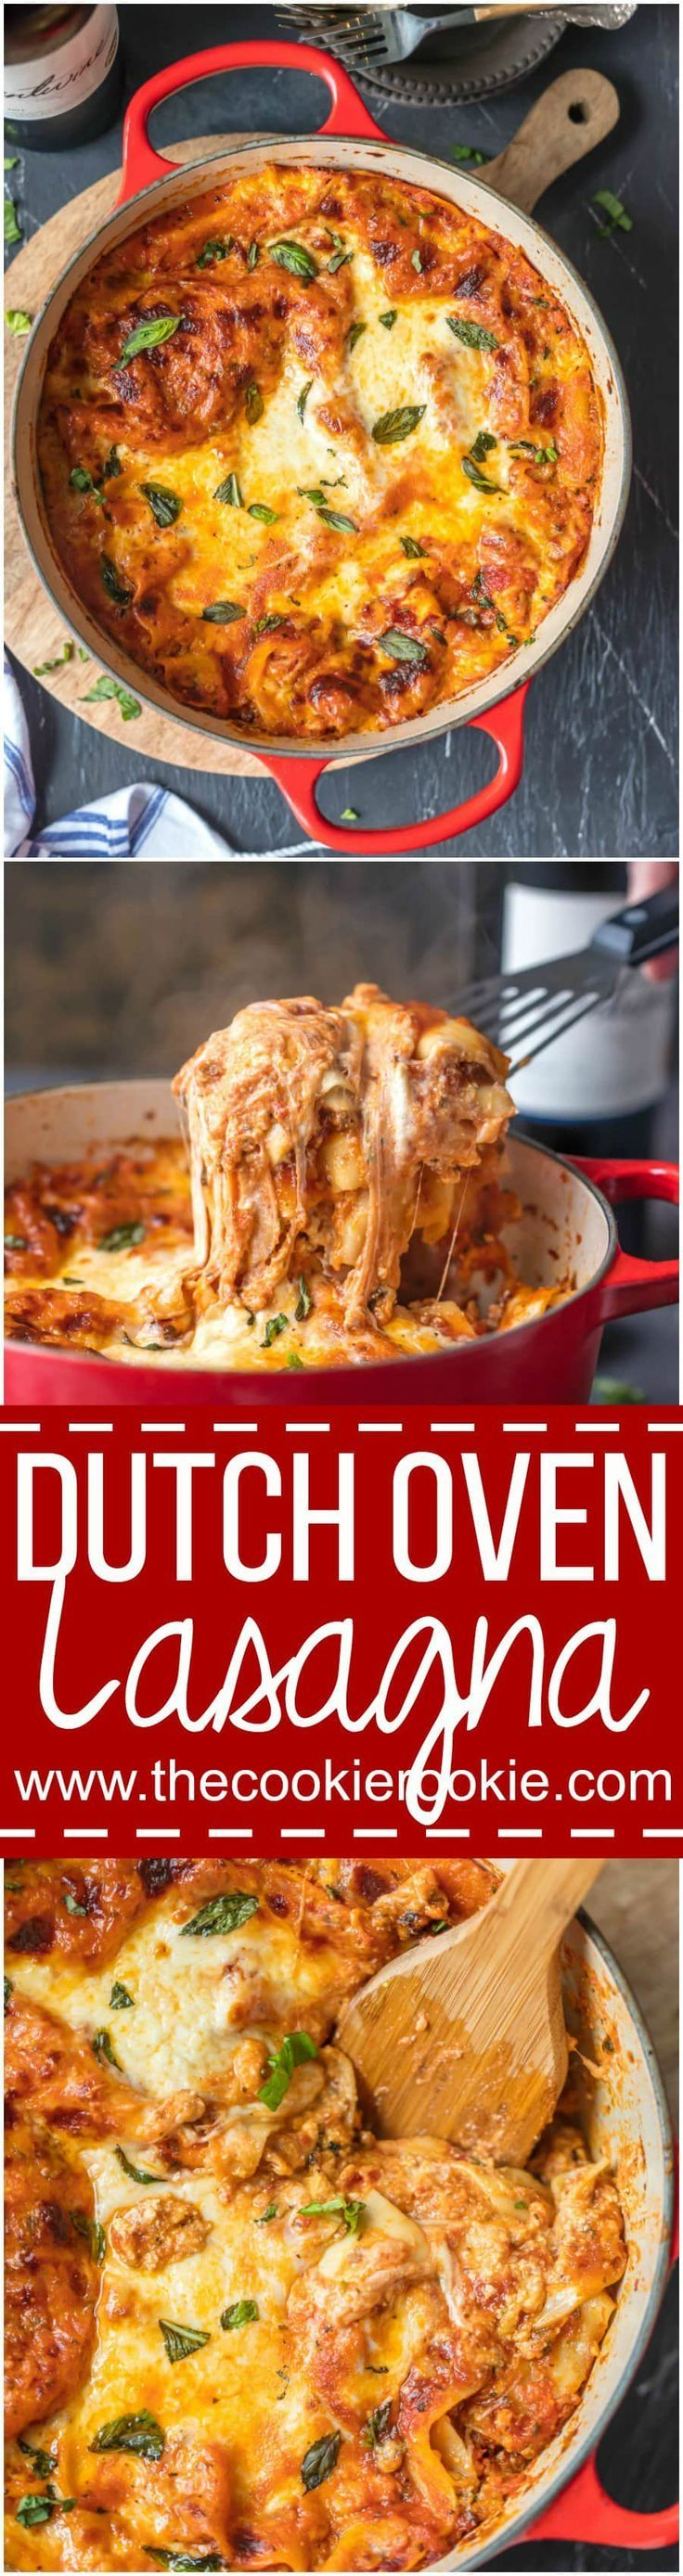 This DUTCH OVEN LASAGNA will blow your mind! You'll never make traditional lasagna again after making this easy stove-top version. We are addicted to this recipe! via @beckygallhardin